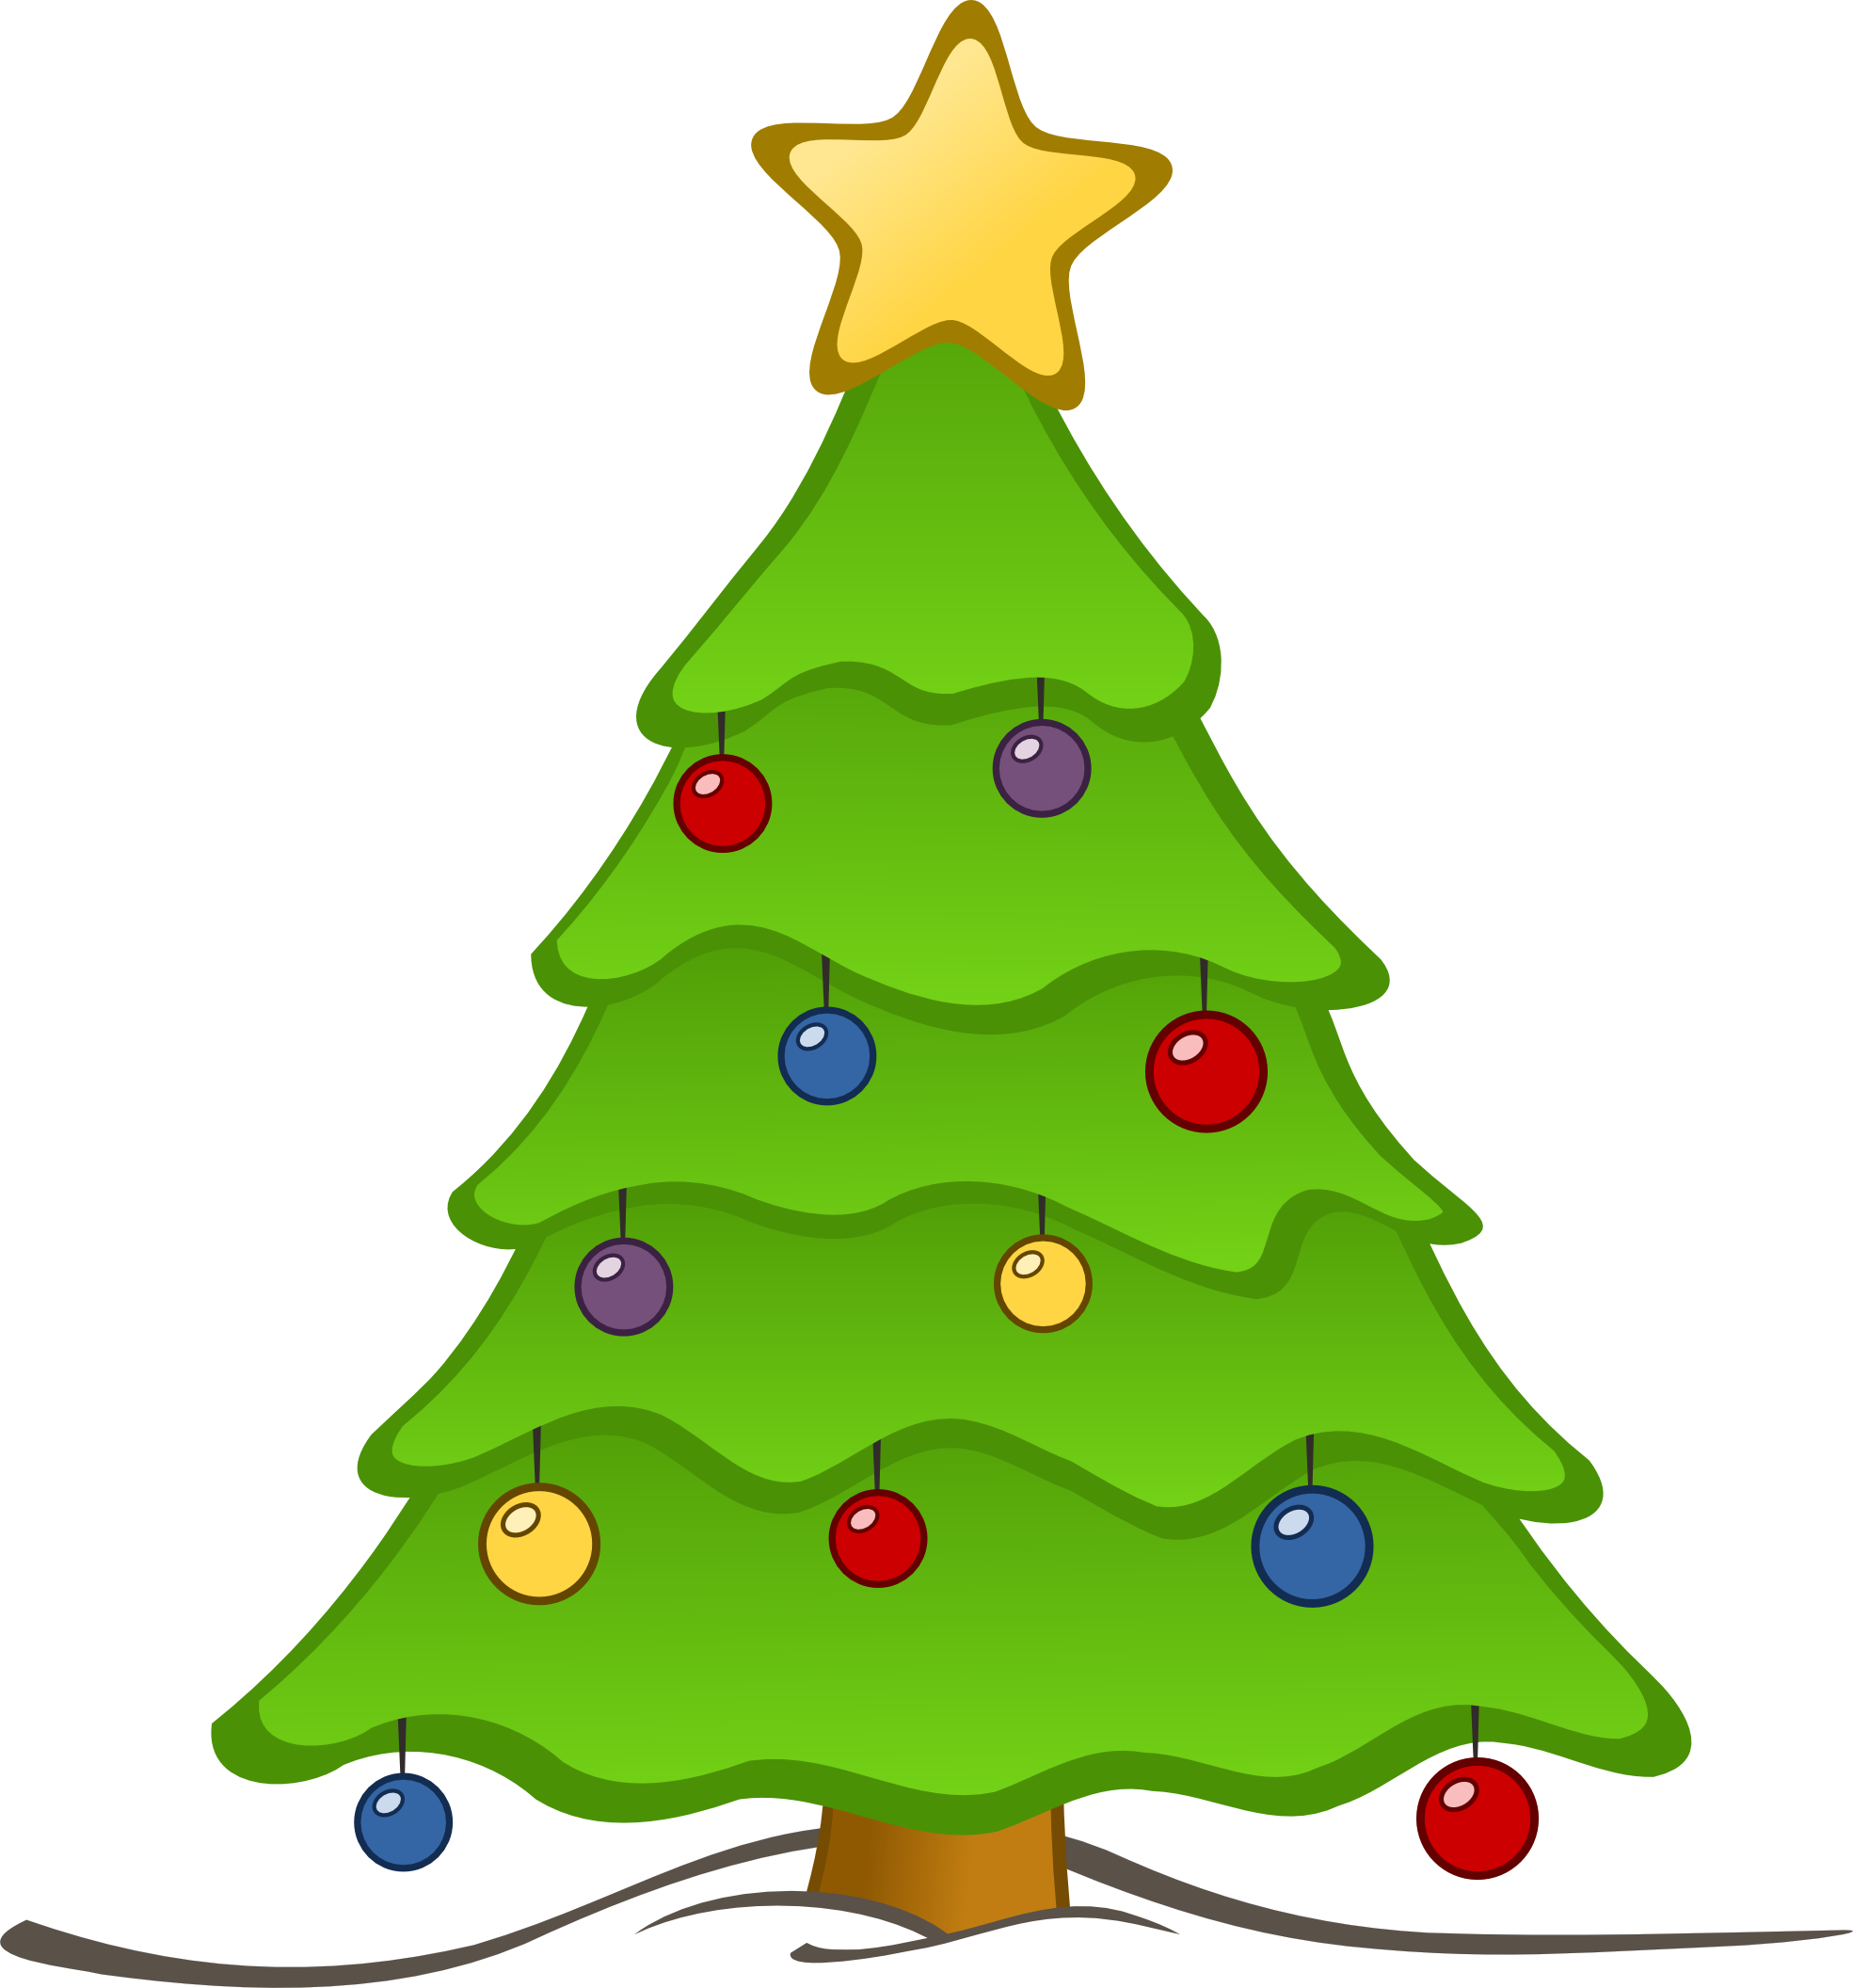 Free Clipart Images Christmas Tree Images Christmas Tree Clipart Cartoon Christmas Tree Present simple and present continuous. free clipart images christmas tree